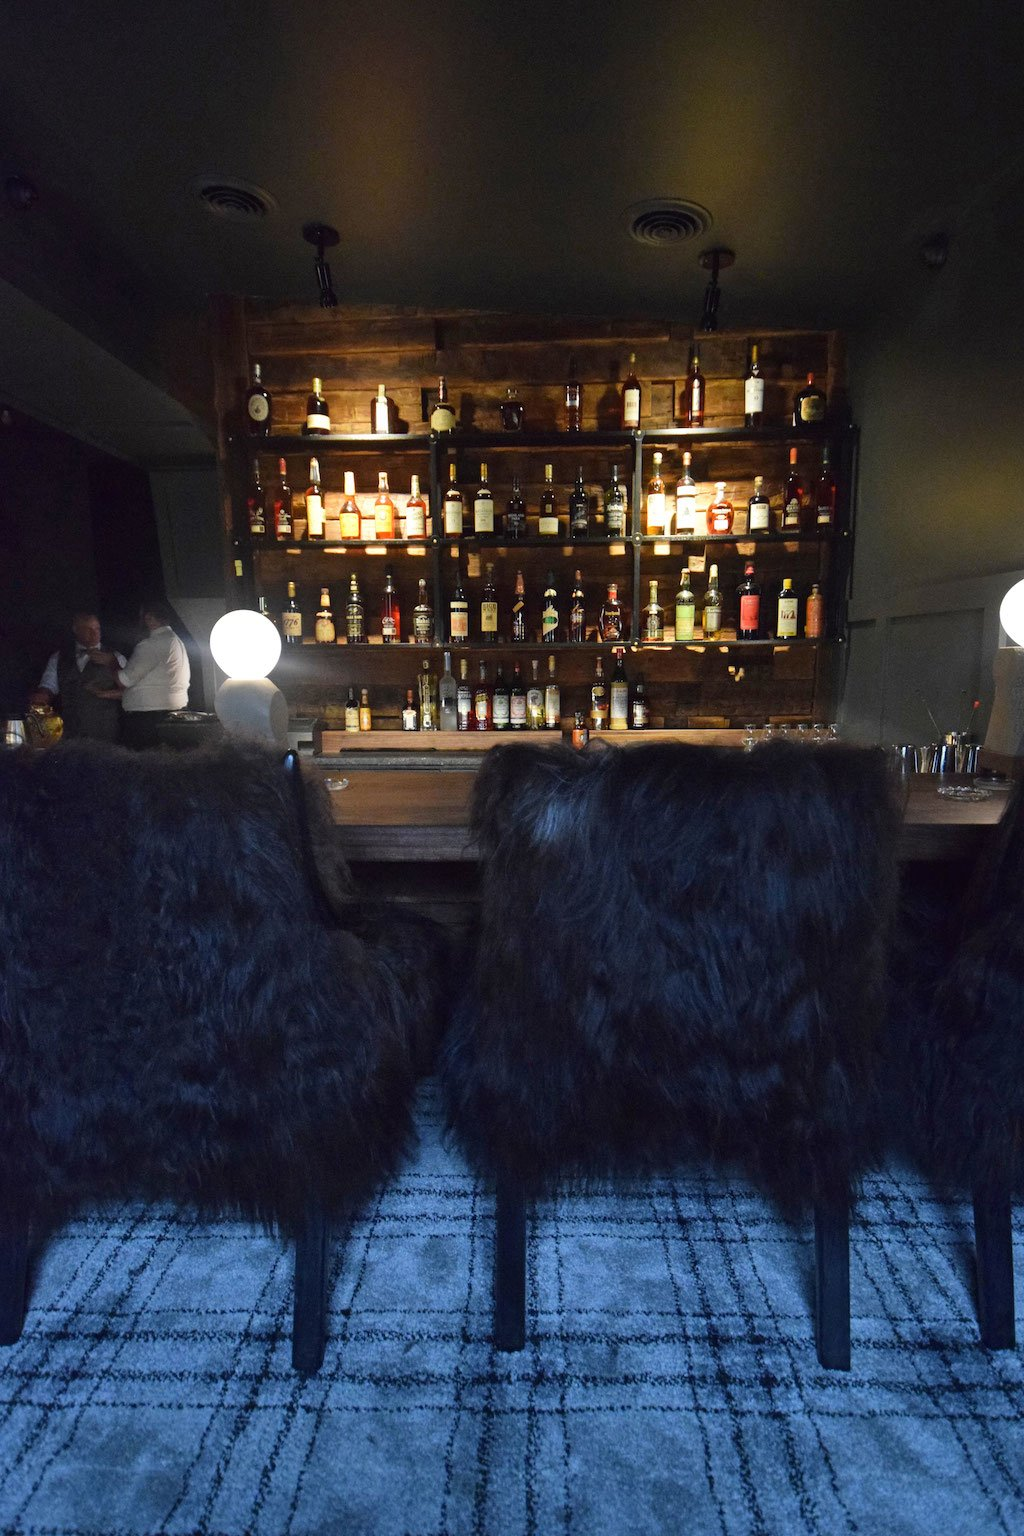 Icelandic sheepskin chairs are the comfiest bar seats in town.